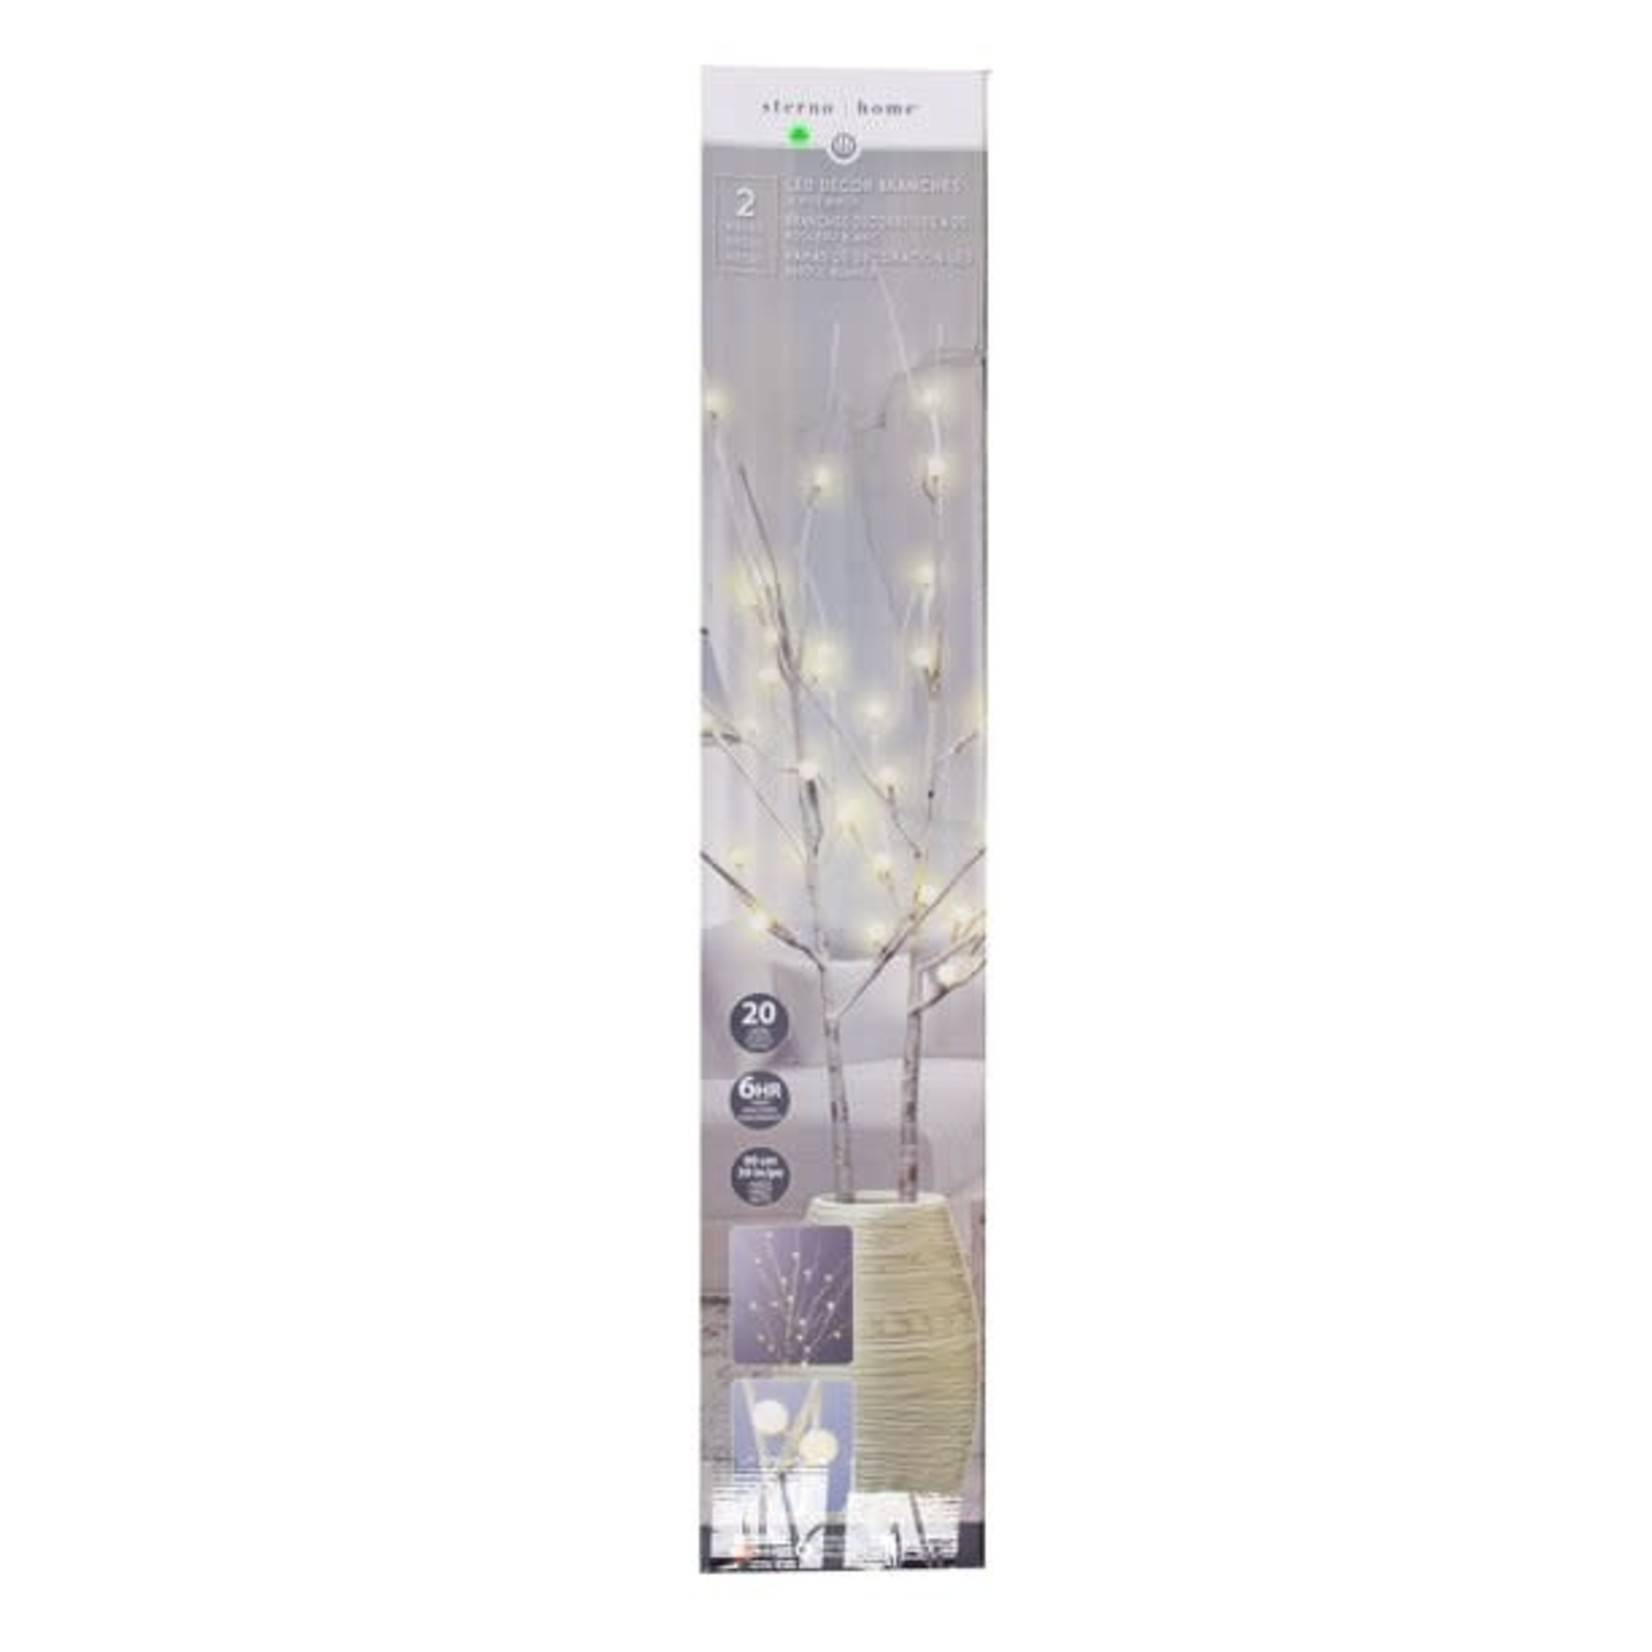 Sterno Home LED Decor Branches BROWN (set of 2)